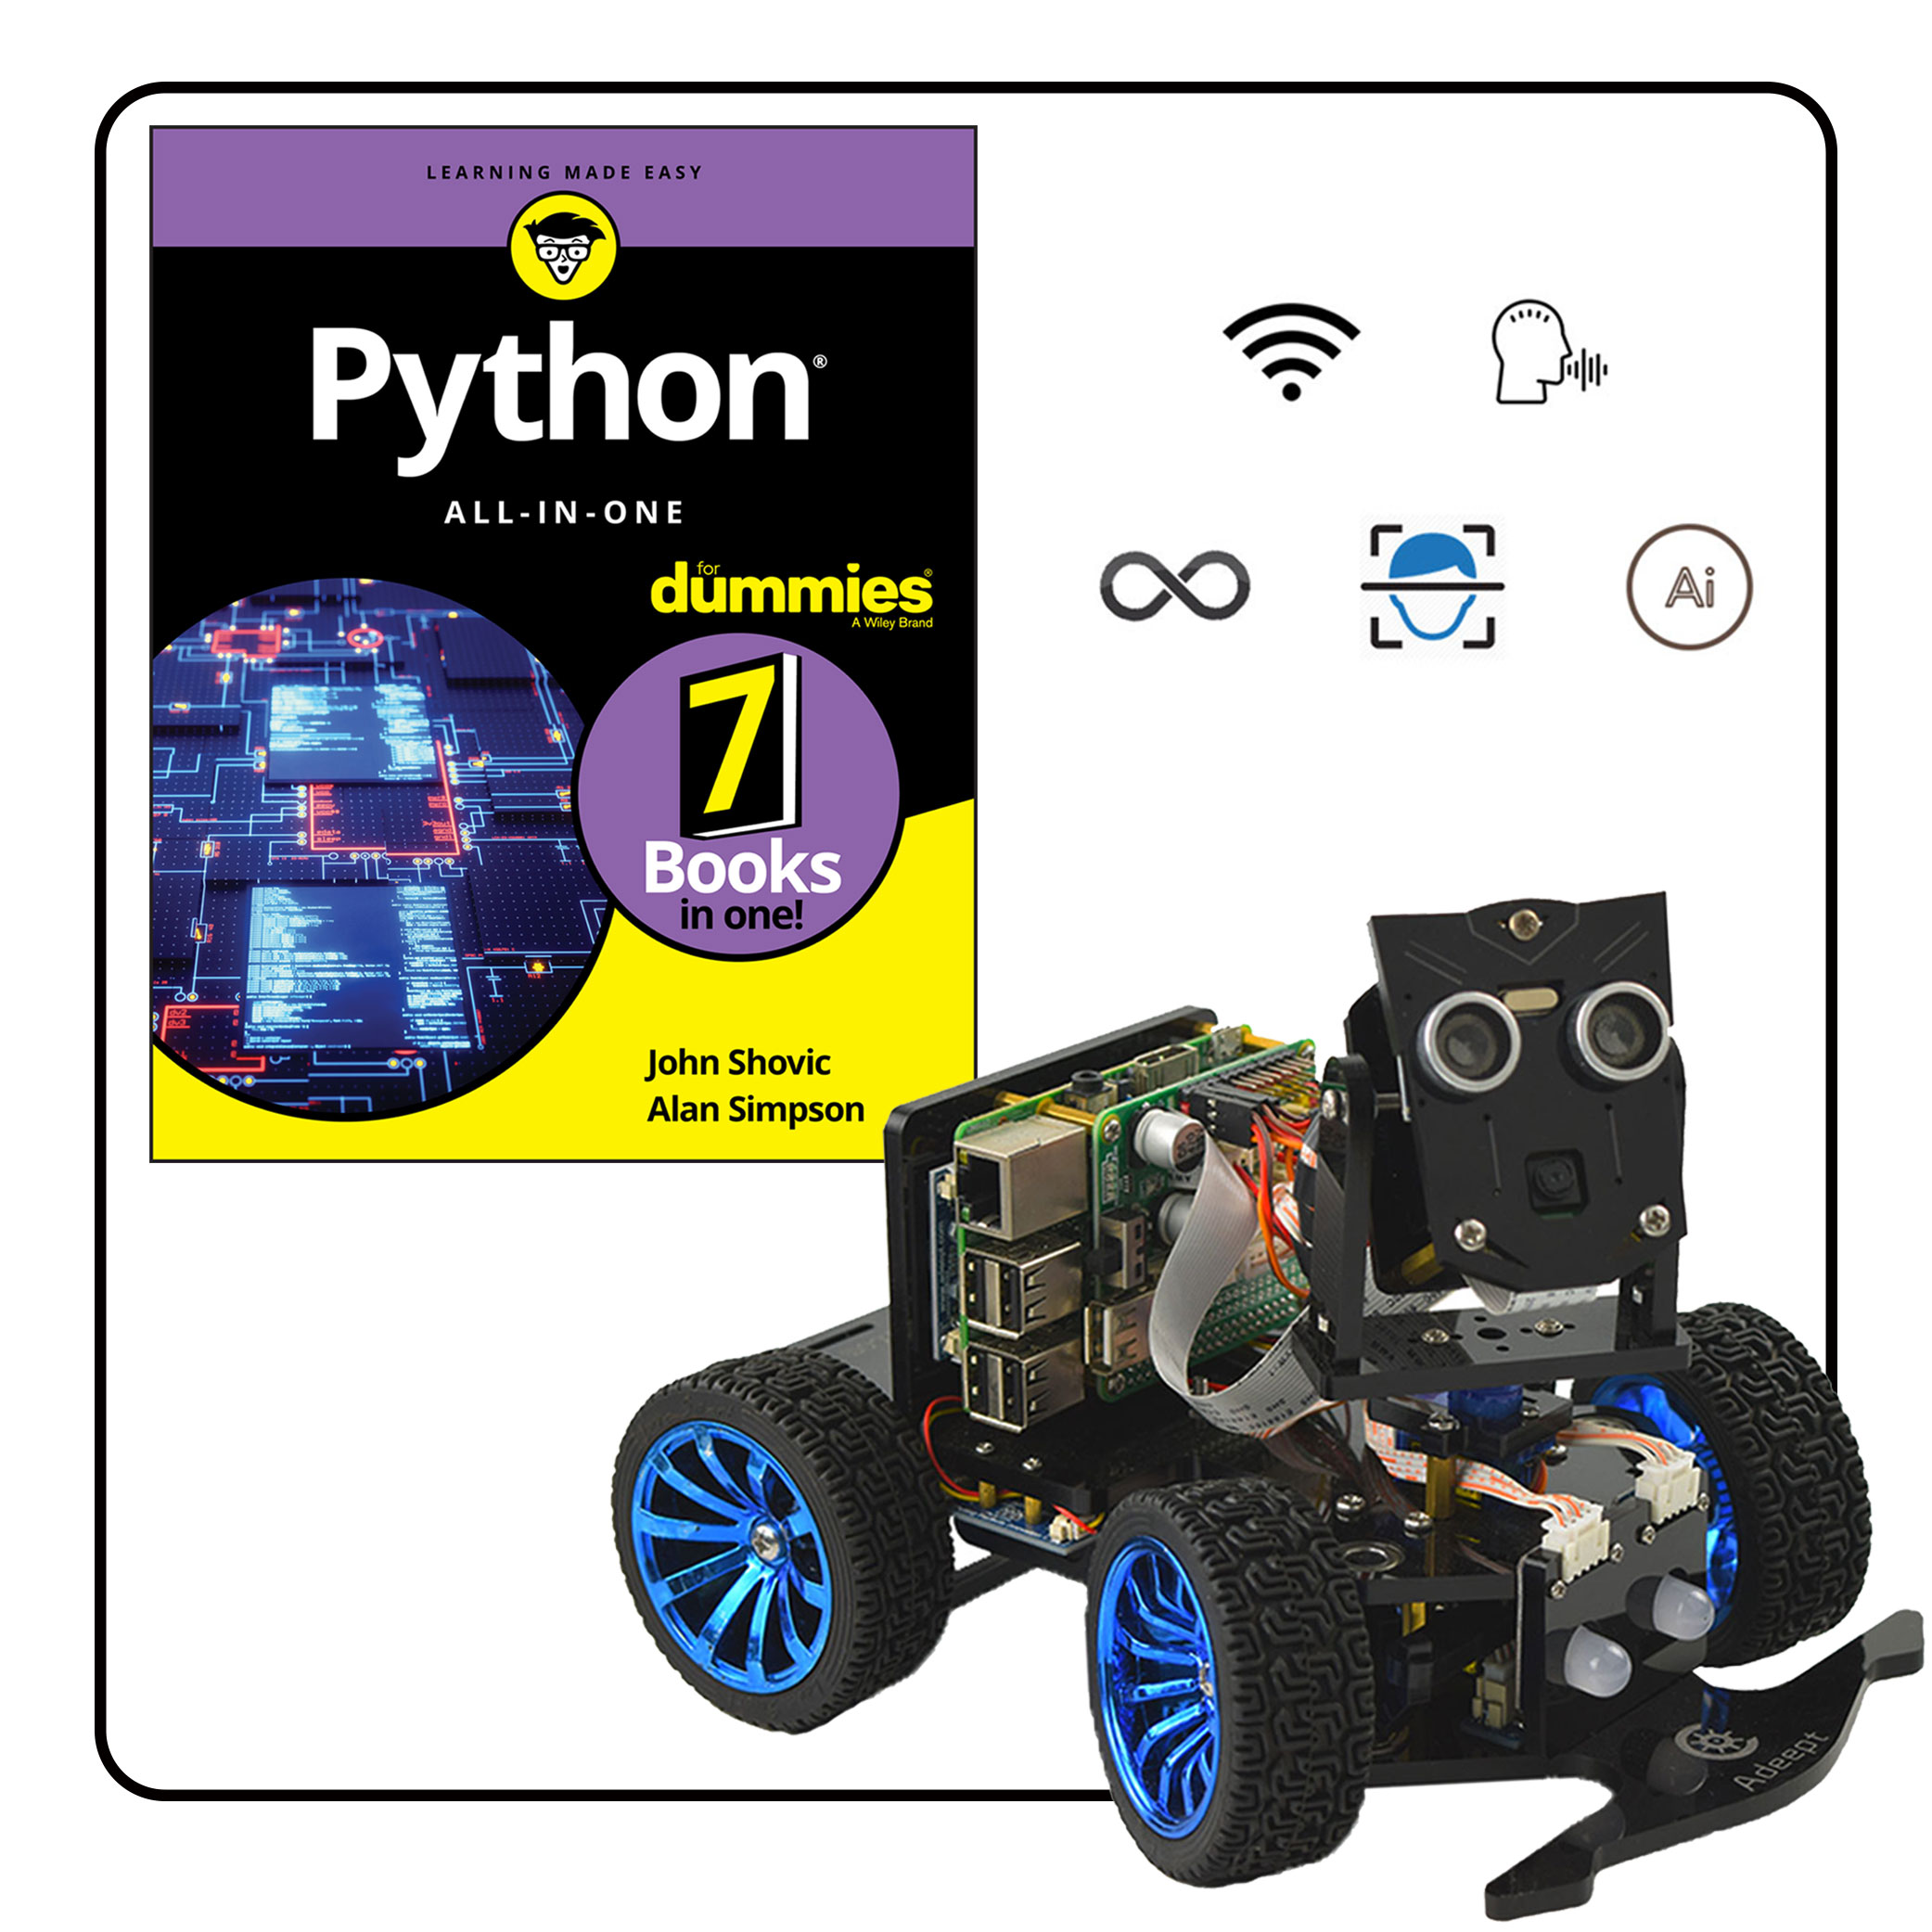 PiCar-B featured in book Python all-in-one